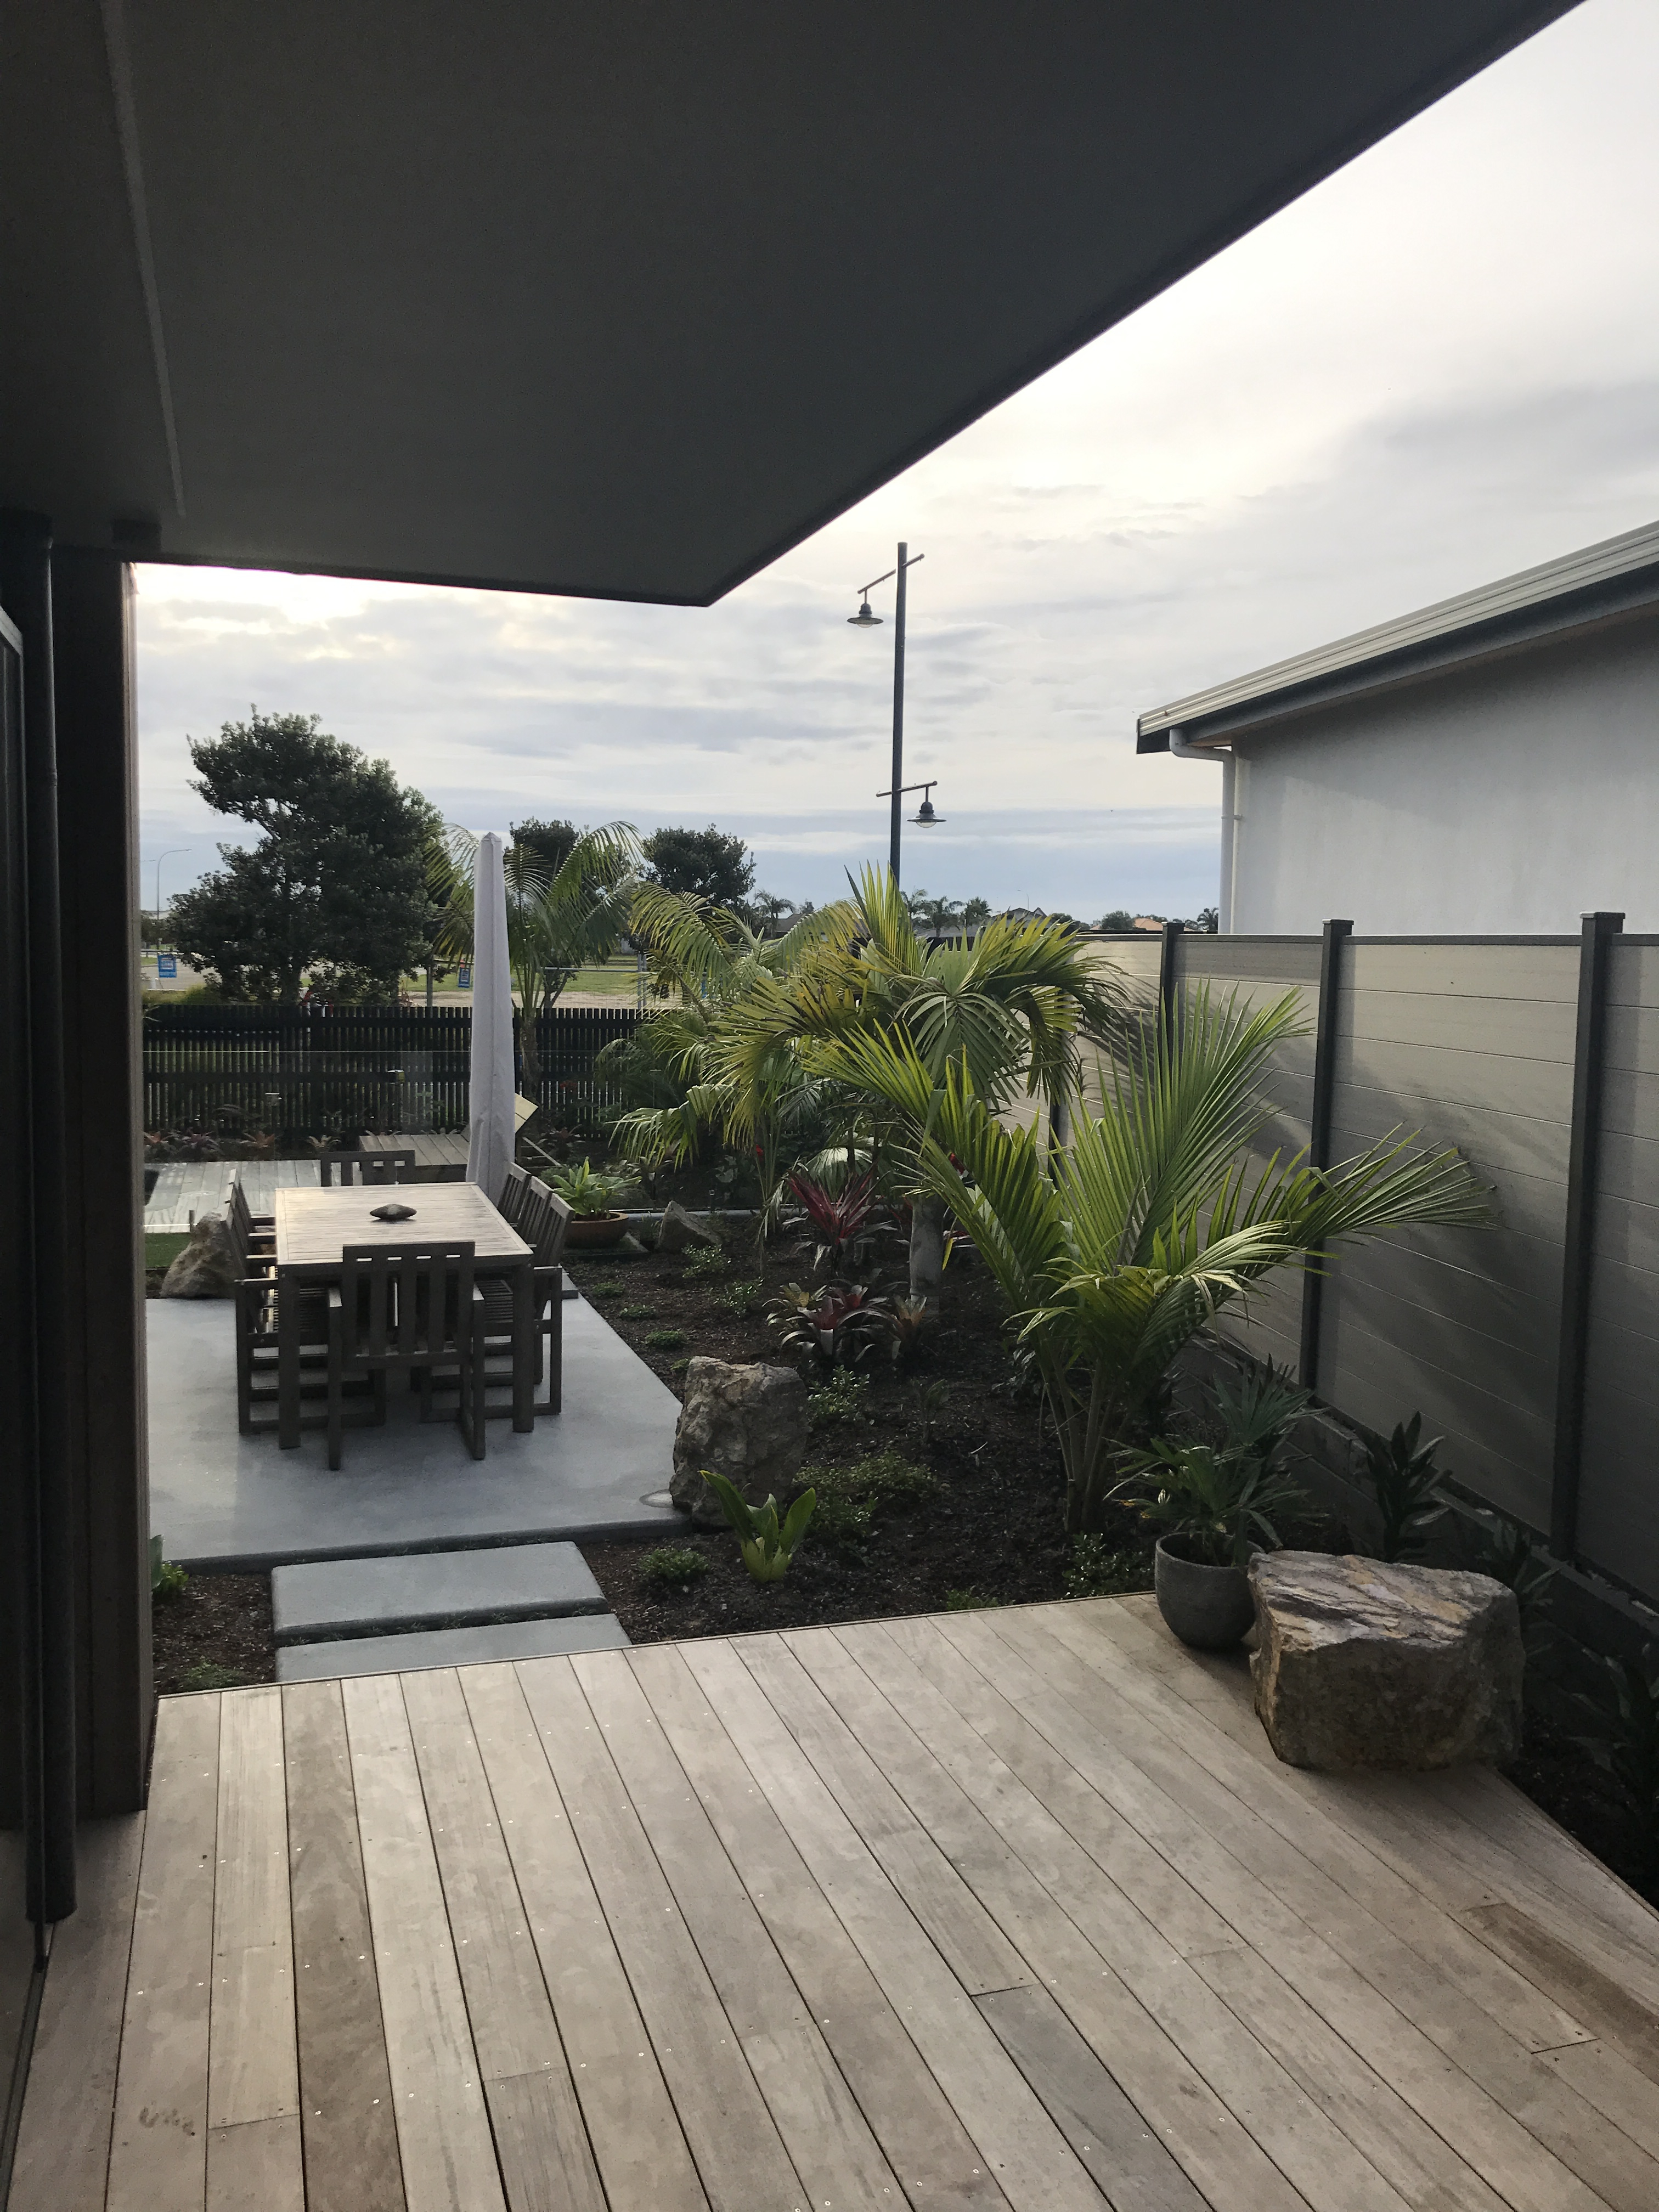 Decking, Concrete patio, Tropical planting